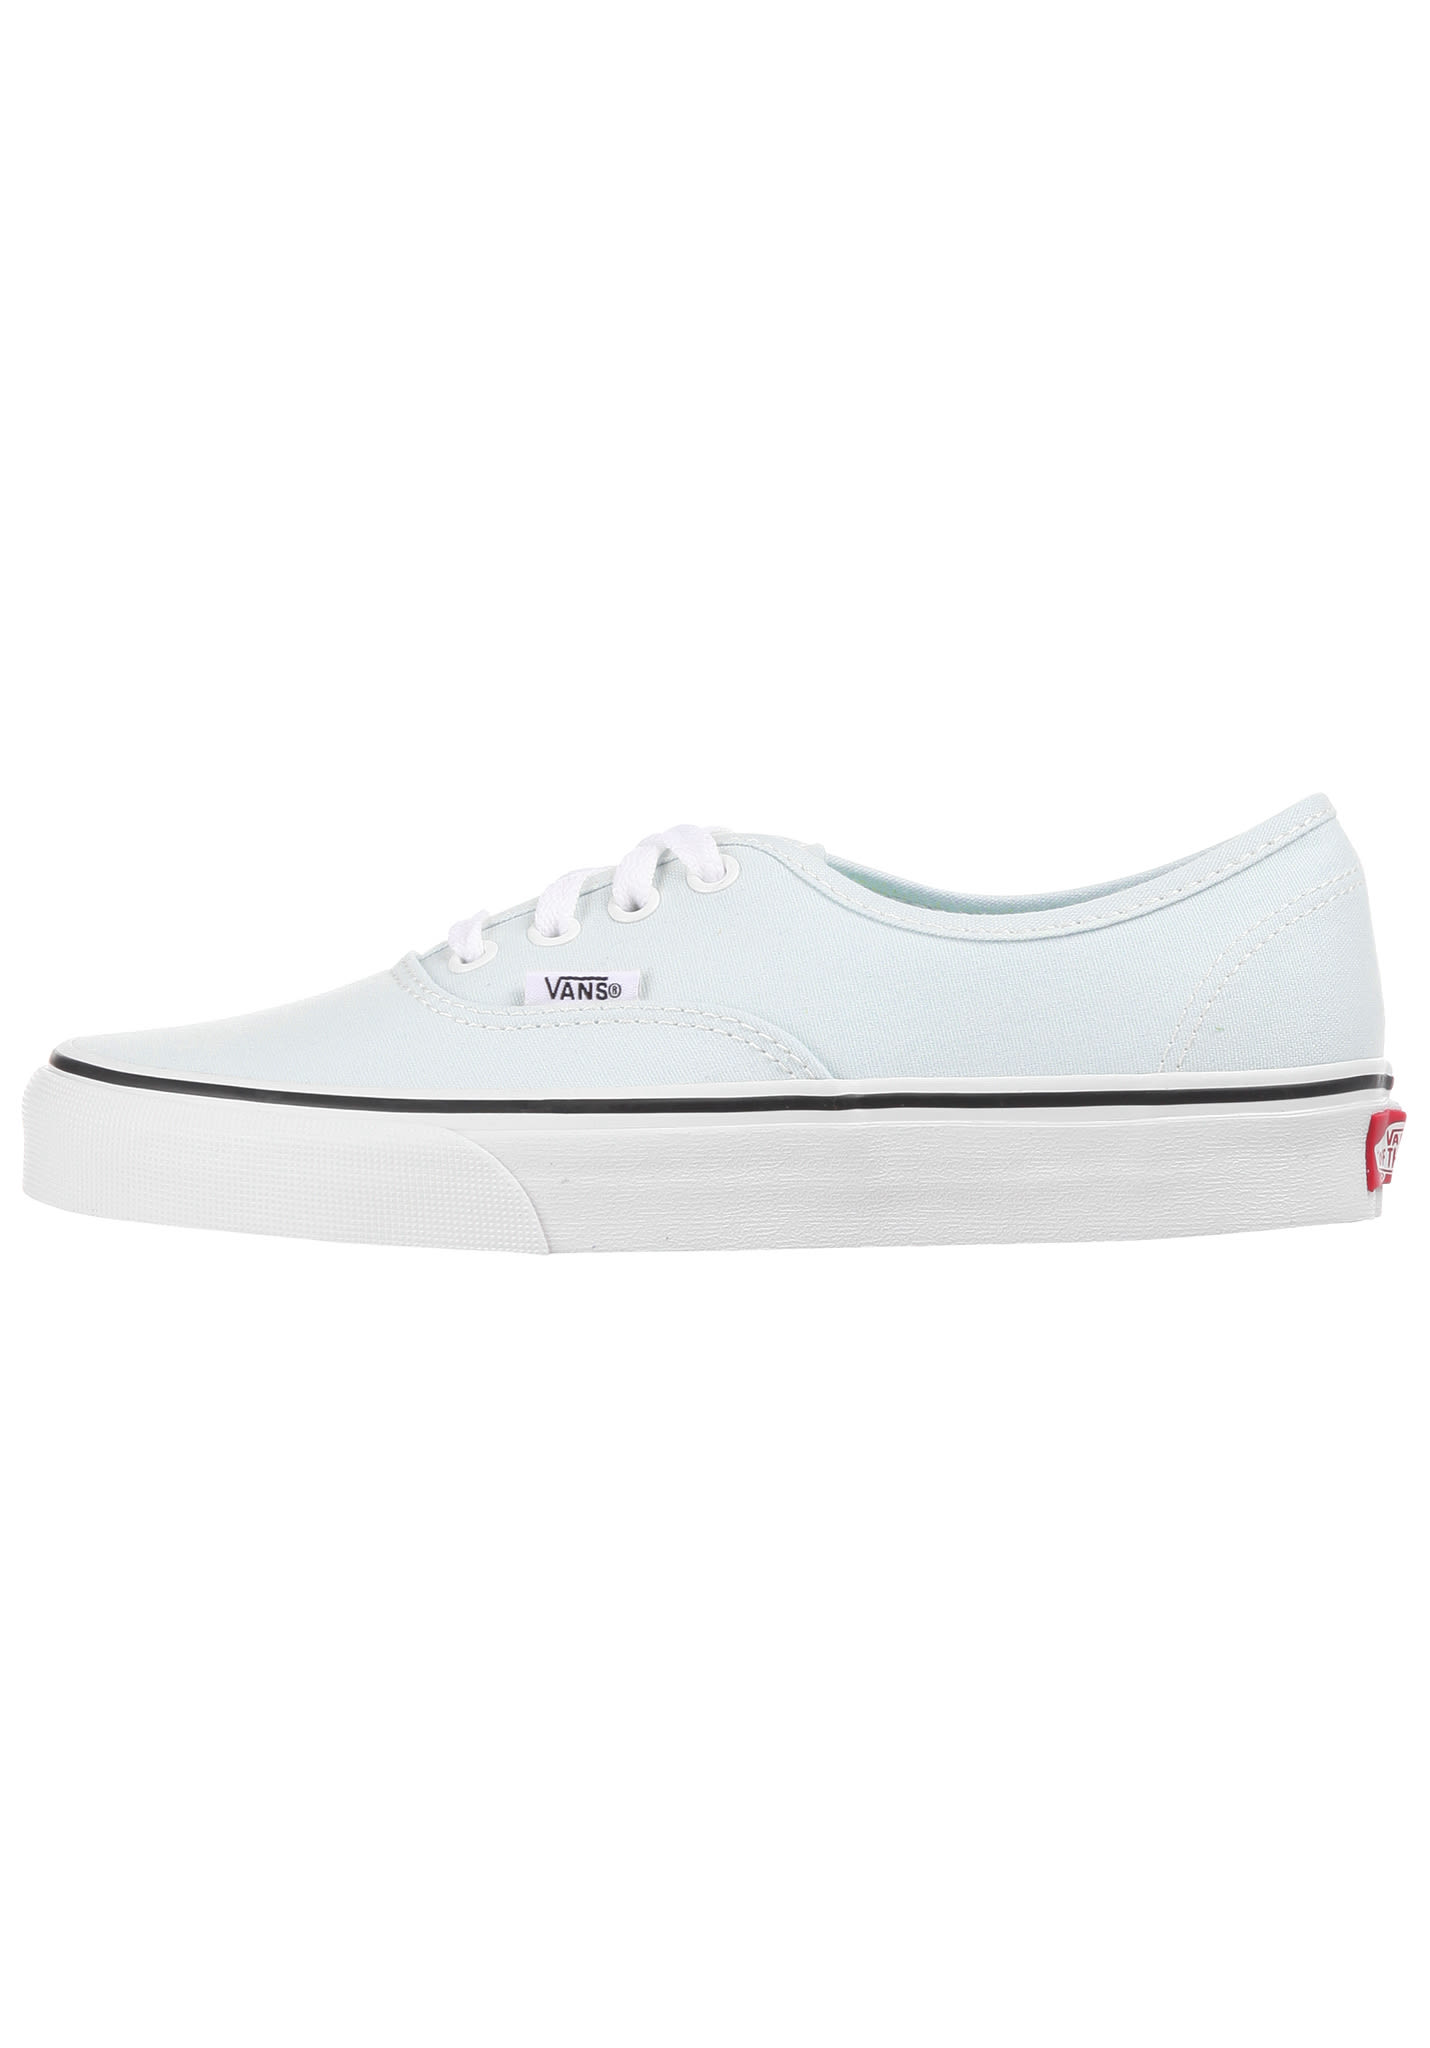 VANS Authentic - Sneaker für Damen - Beige - Planet Sports